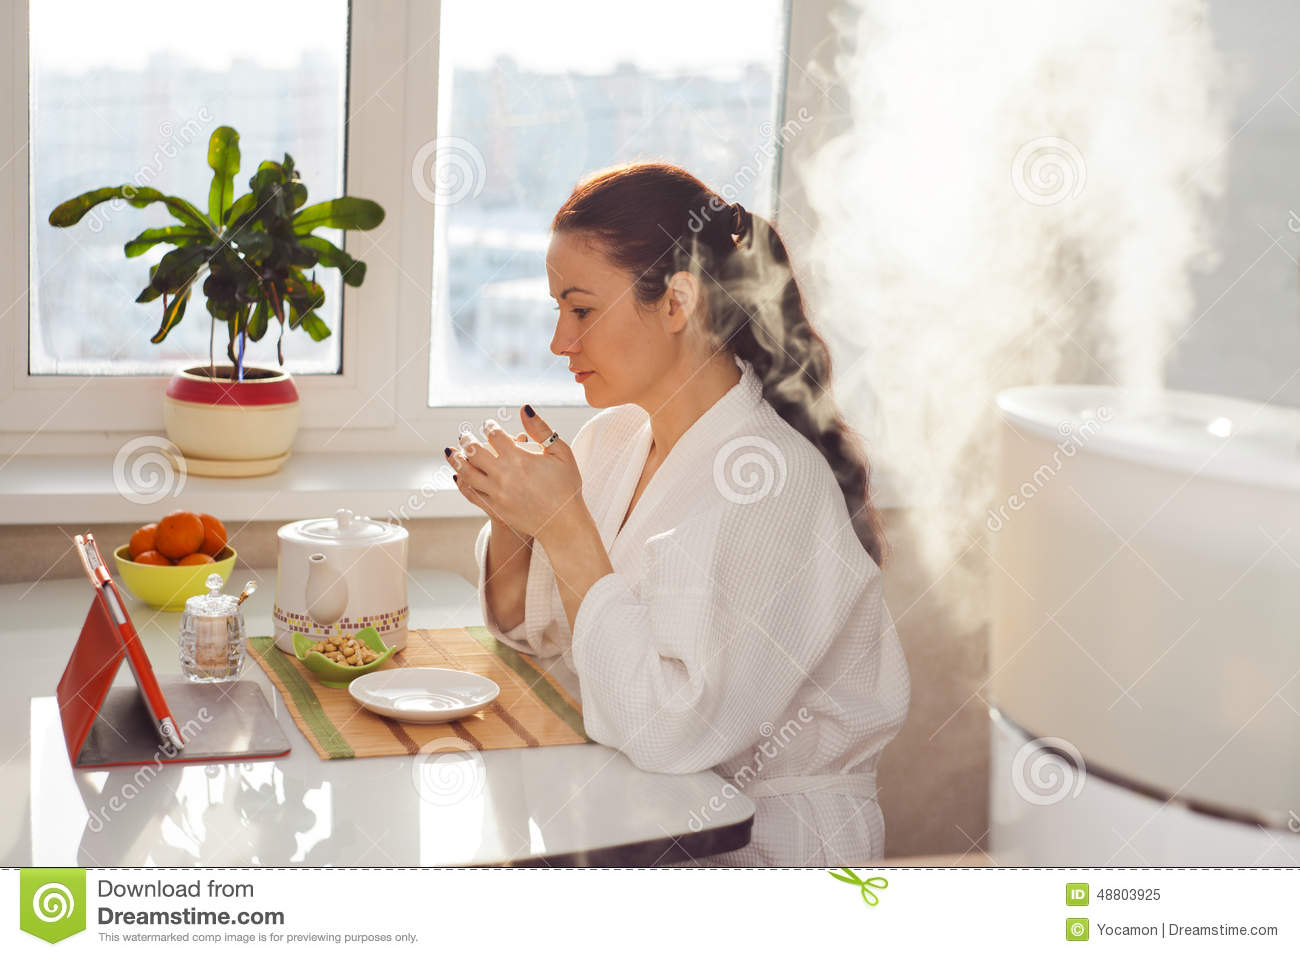 Tea Reading Tablet At Humidifier Stock Photo Image: 48803925 #B93910